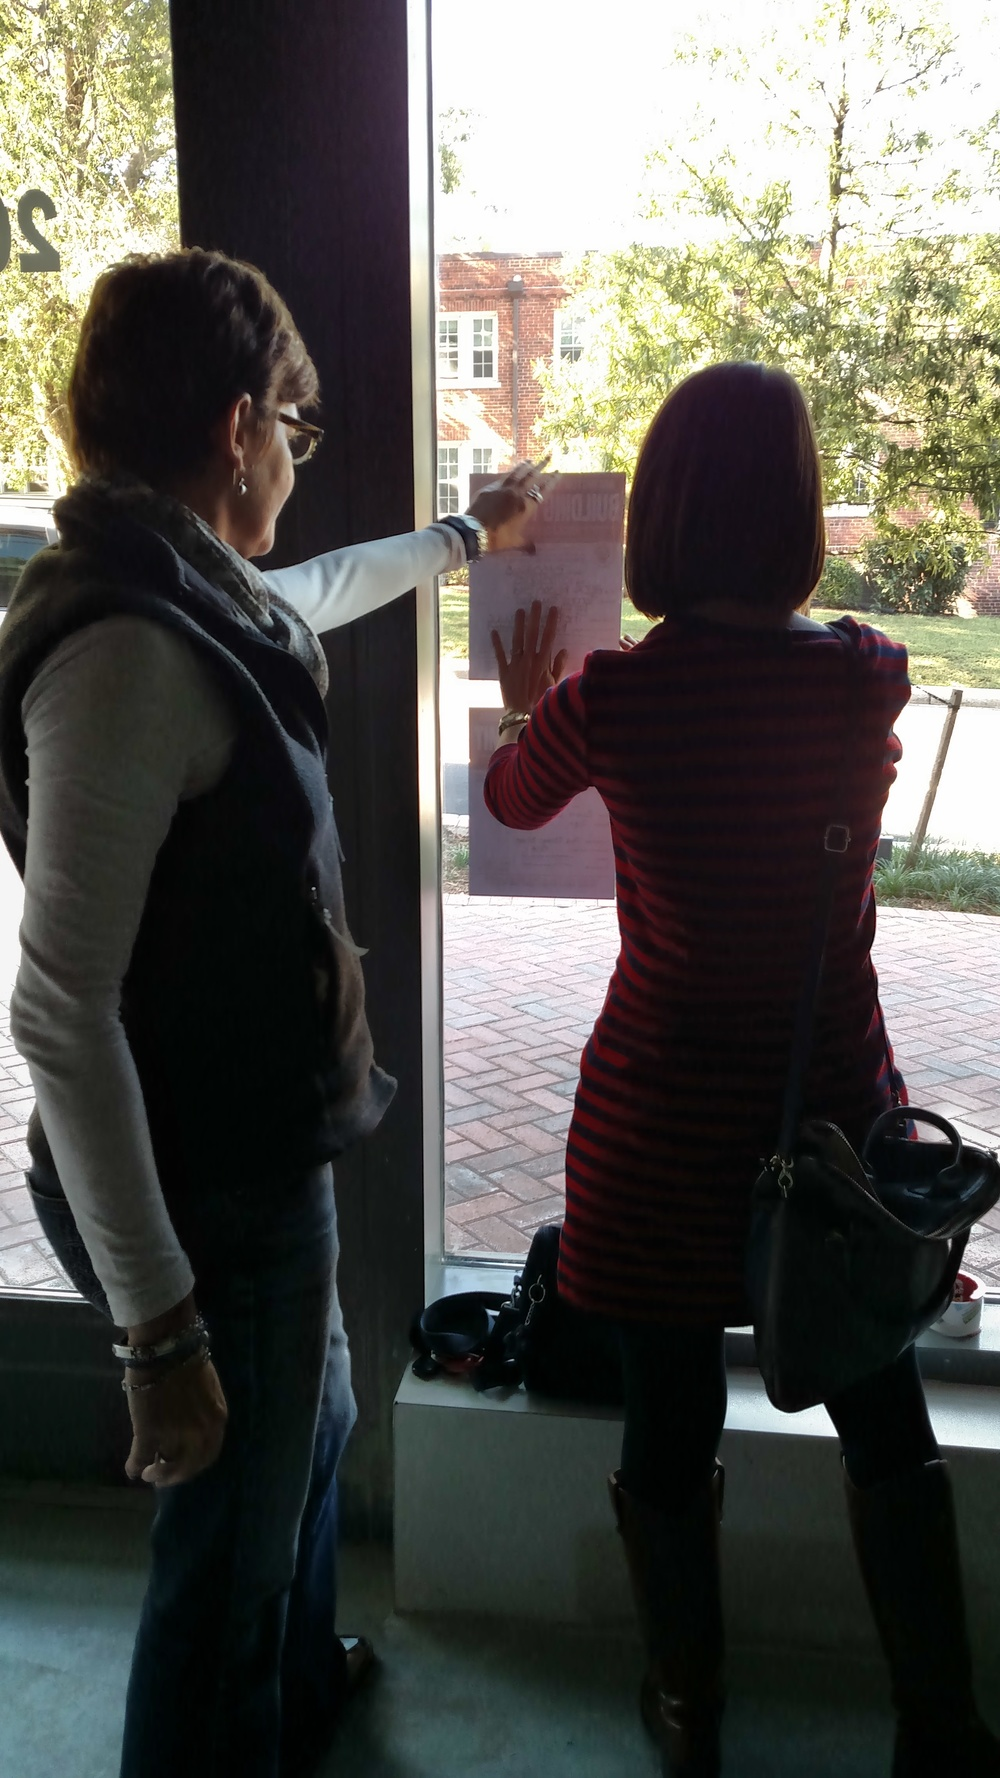 Hanging approved permits with our architect, Susan